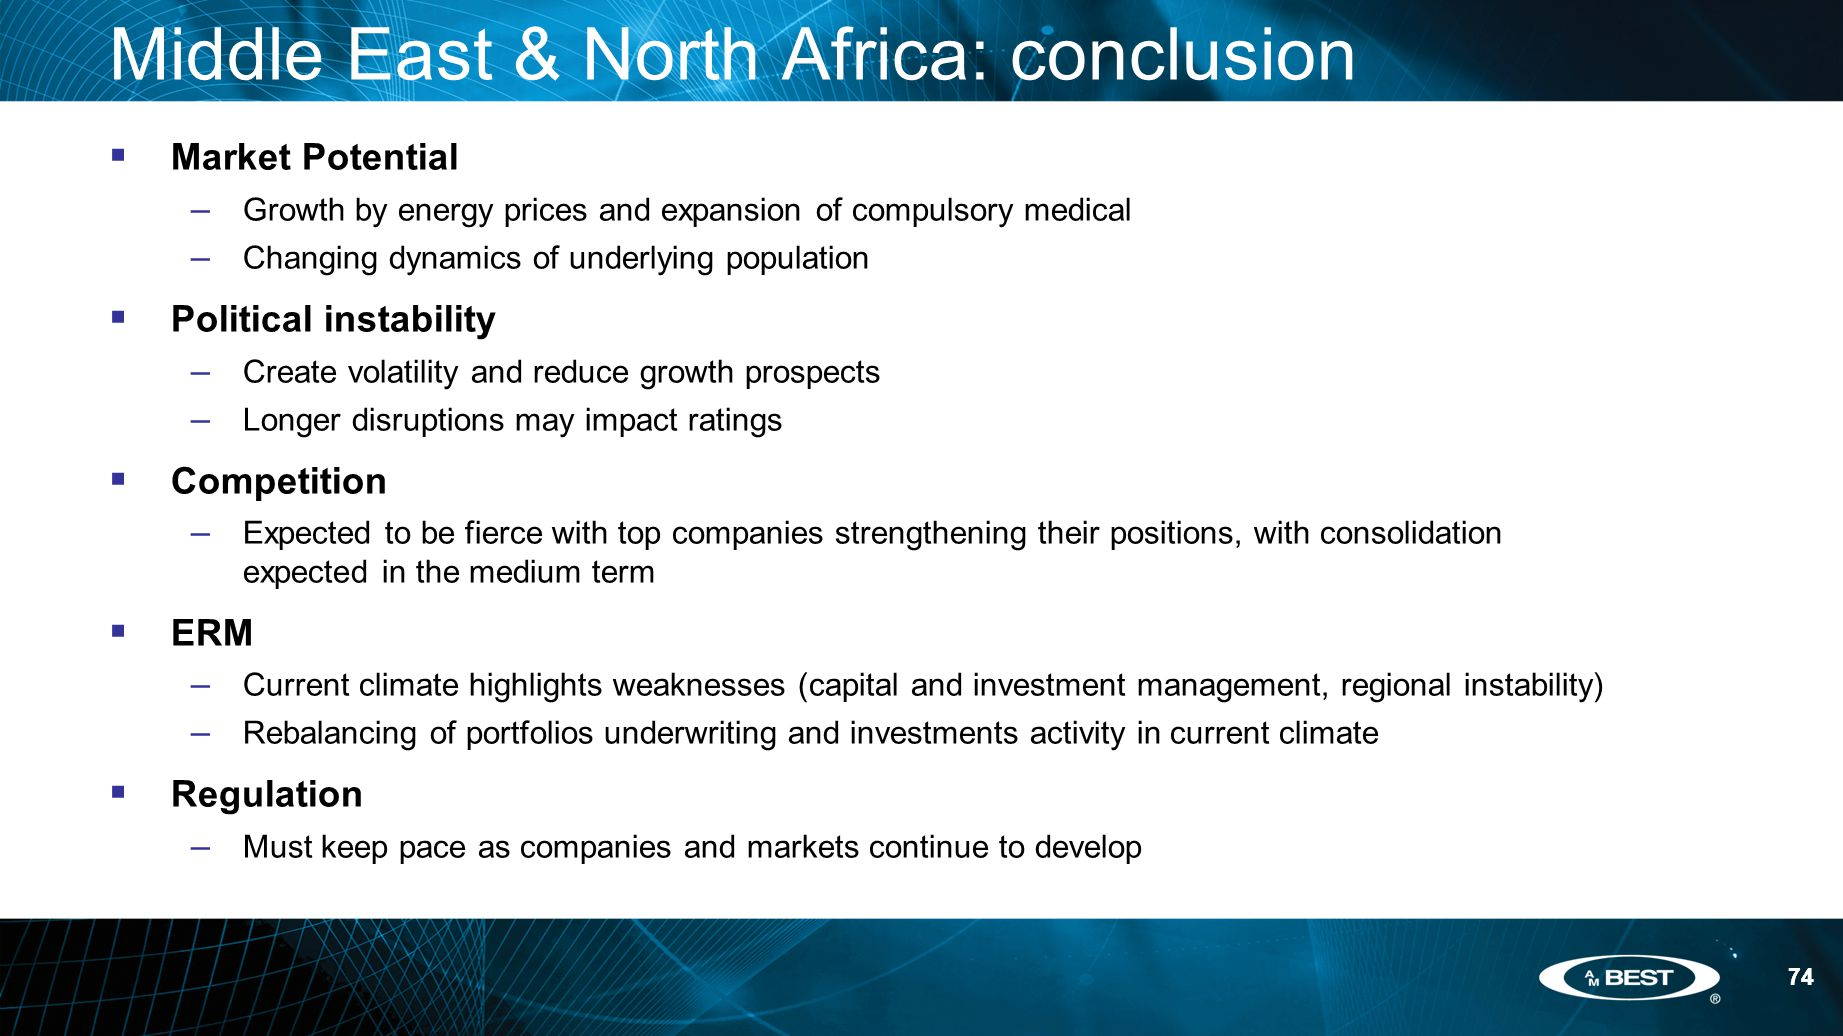 74 Middle East & North Africa: conclusion  Market Potential – Growth by energy prices and expansion of compulsory medical – Changing dynamics of underlying population  Political instability – Create volatility and reduce growth prospects – Longer disruptions may impact ratings  Competition – Expected to be fierce with top companies strengthening their positions, with consolidation expected in the medium term  ERM – Current climate highlights weaknesses (capital and investment management, regional instability) – Rebalancing of portfolios underwriting and investments activity in current climate  Regulation – Must keep pace as companies and markets continue to develop